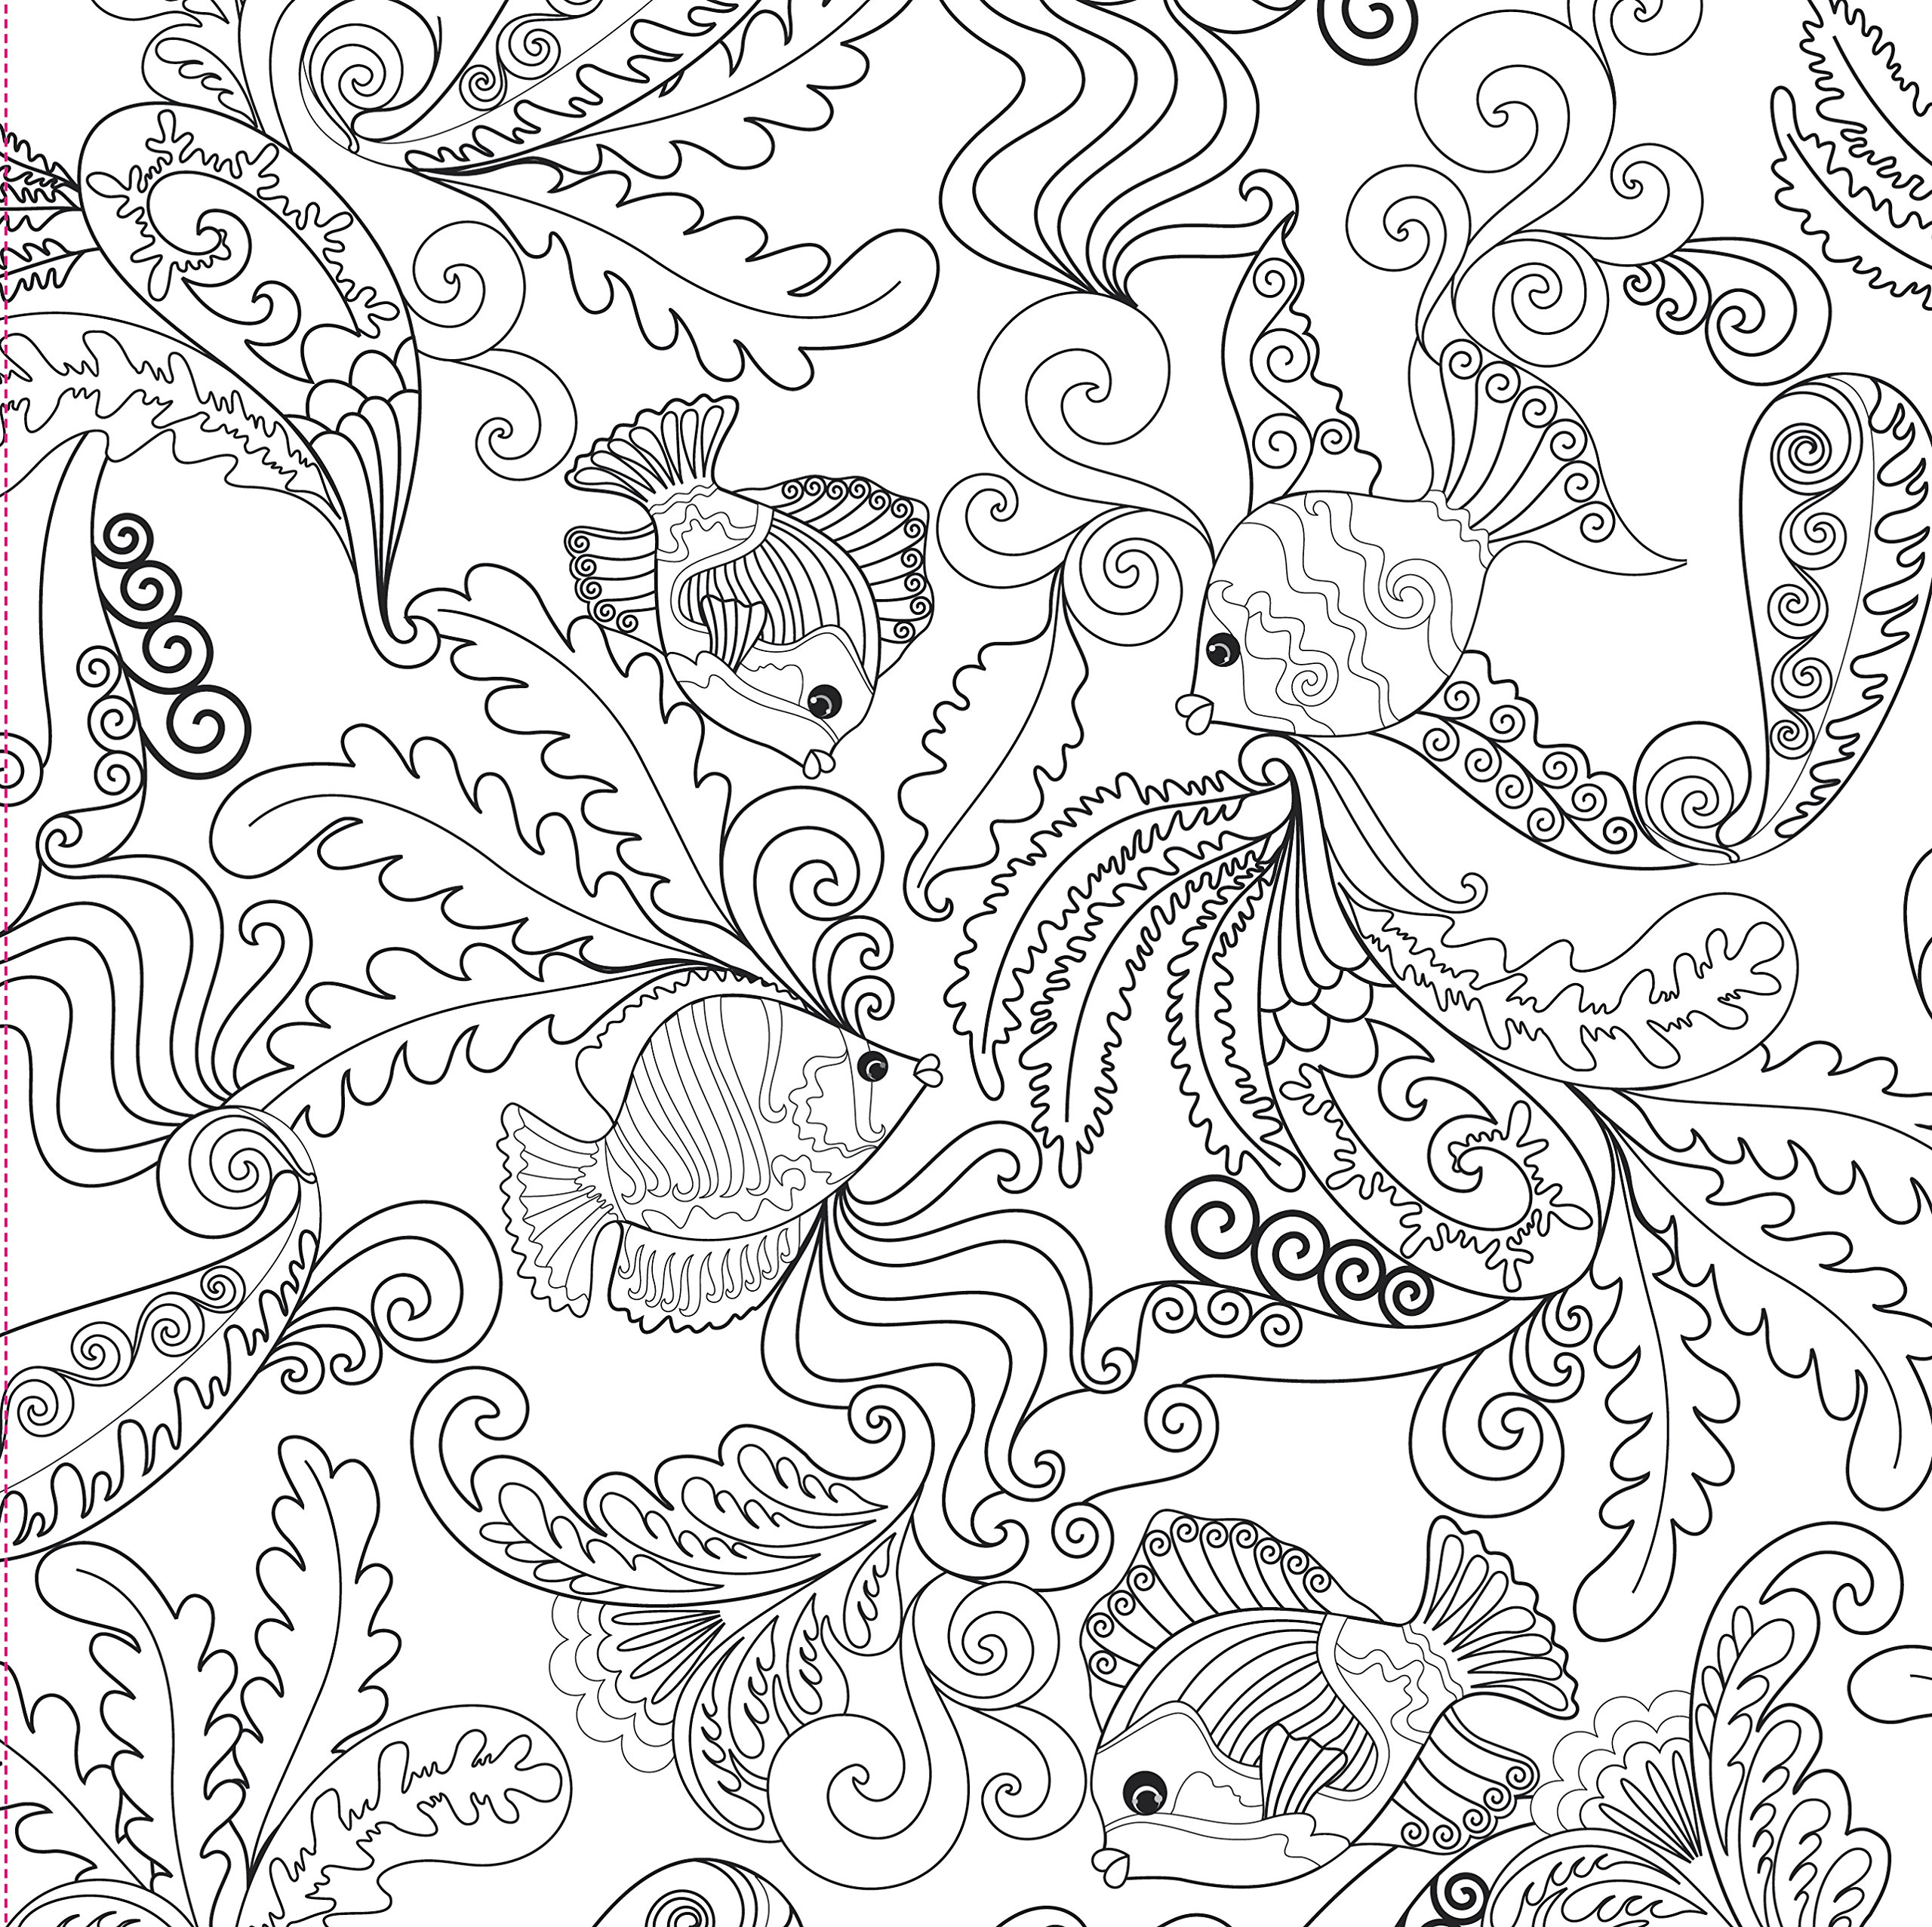 amazoncom ocean designs adult coloring book 31 stress relieving designs studio 9781441319364 peter pauper press books - Adults Coloring Books